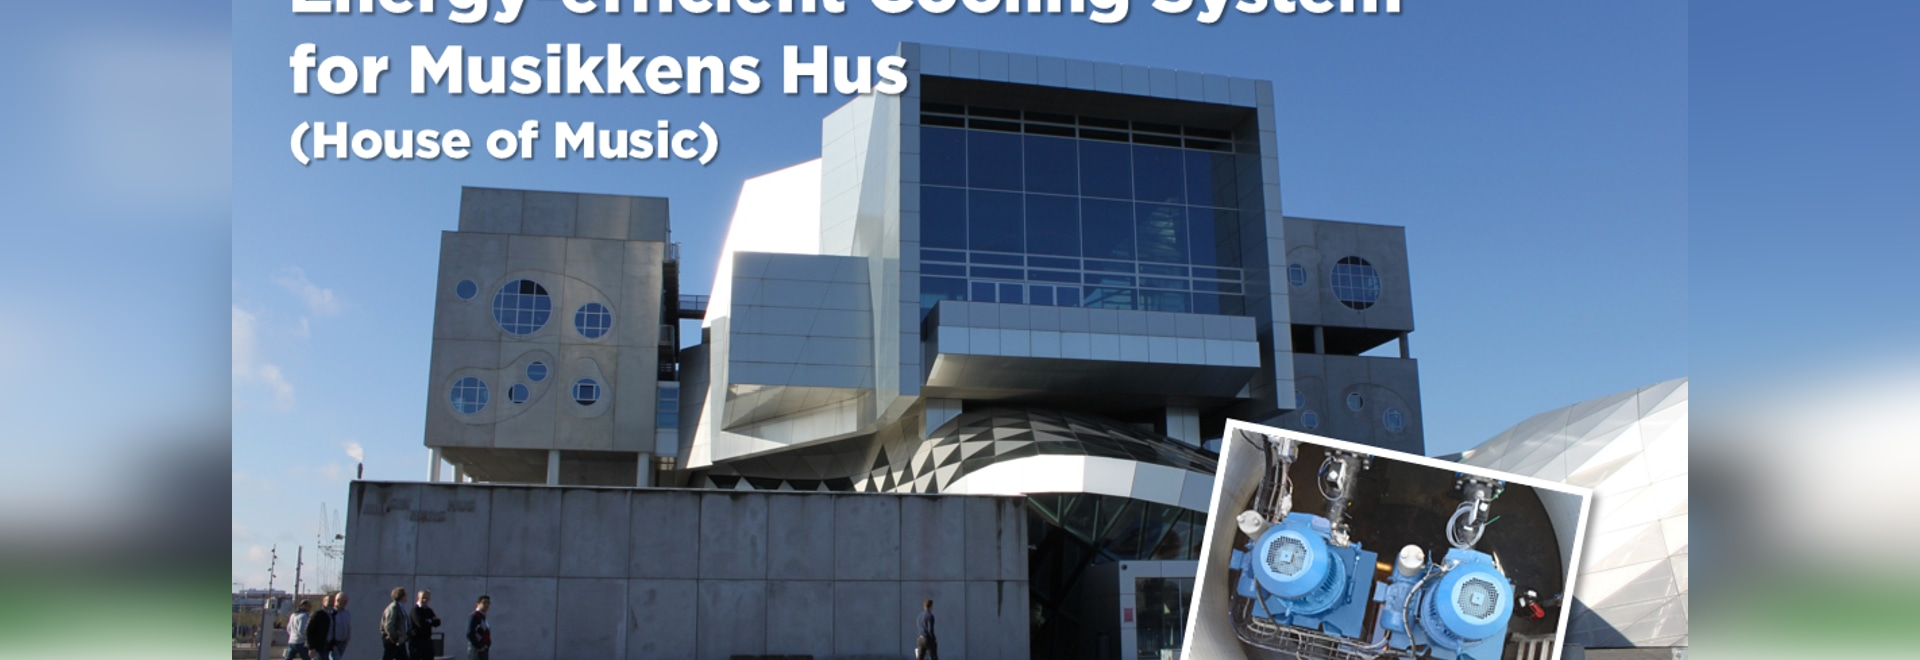 Energy-efficient Cooling System for Musikkens Hus (House of Music)